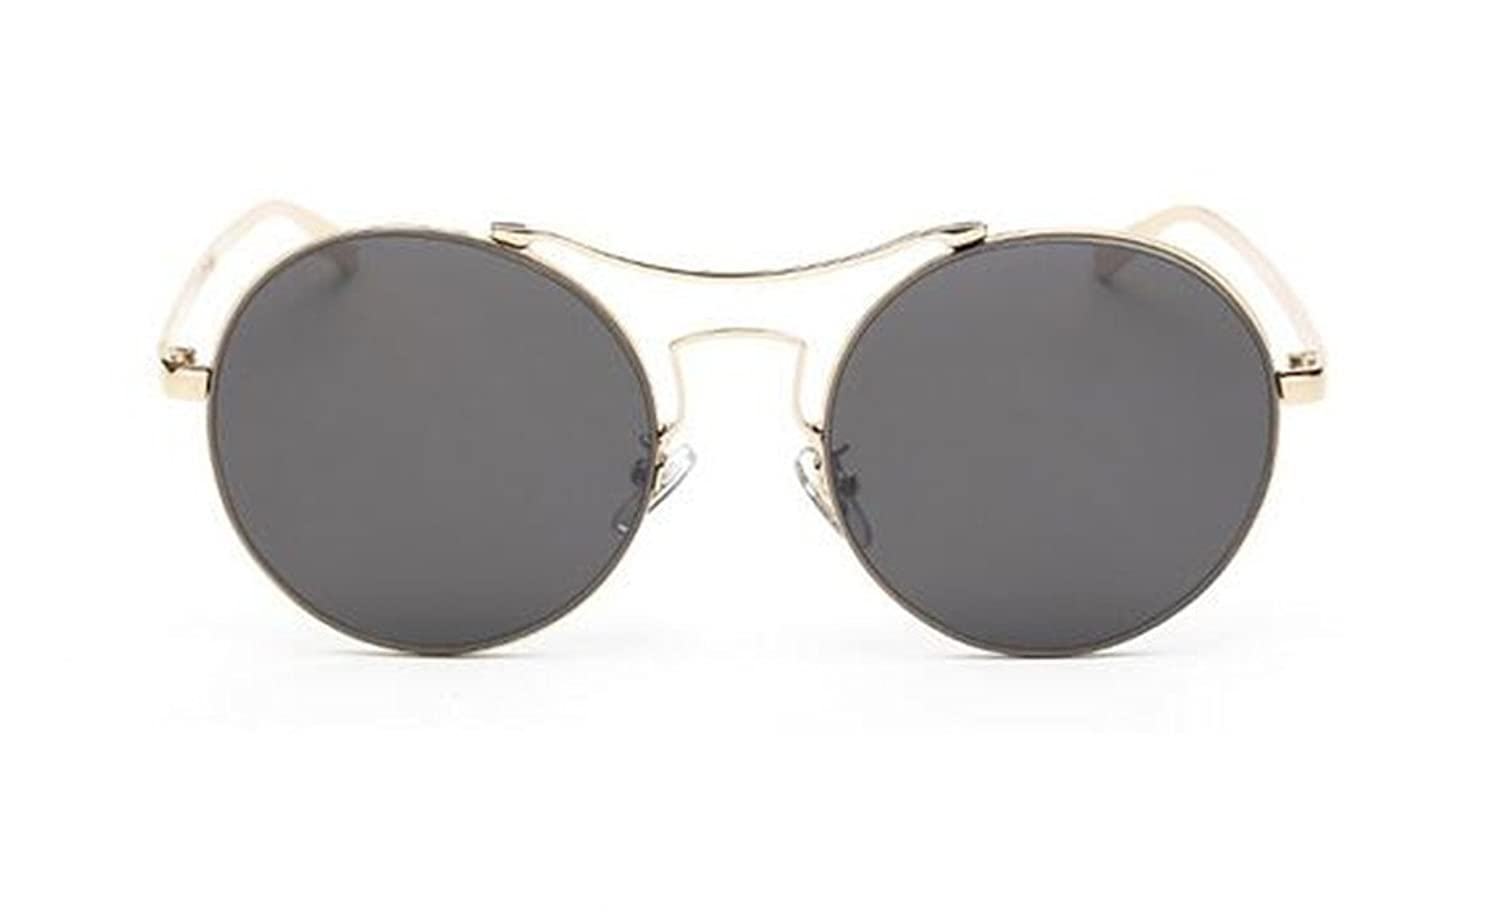 GAMT Prince Personality Reflective Mirror Metal Round Frame Sunglasses UV400